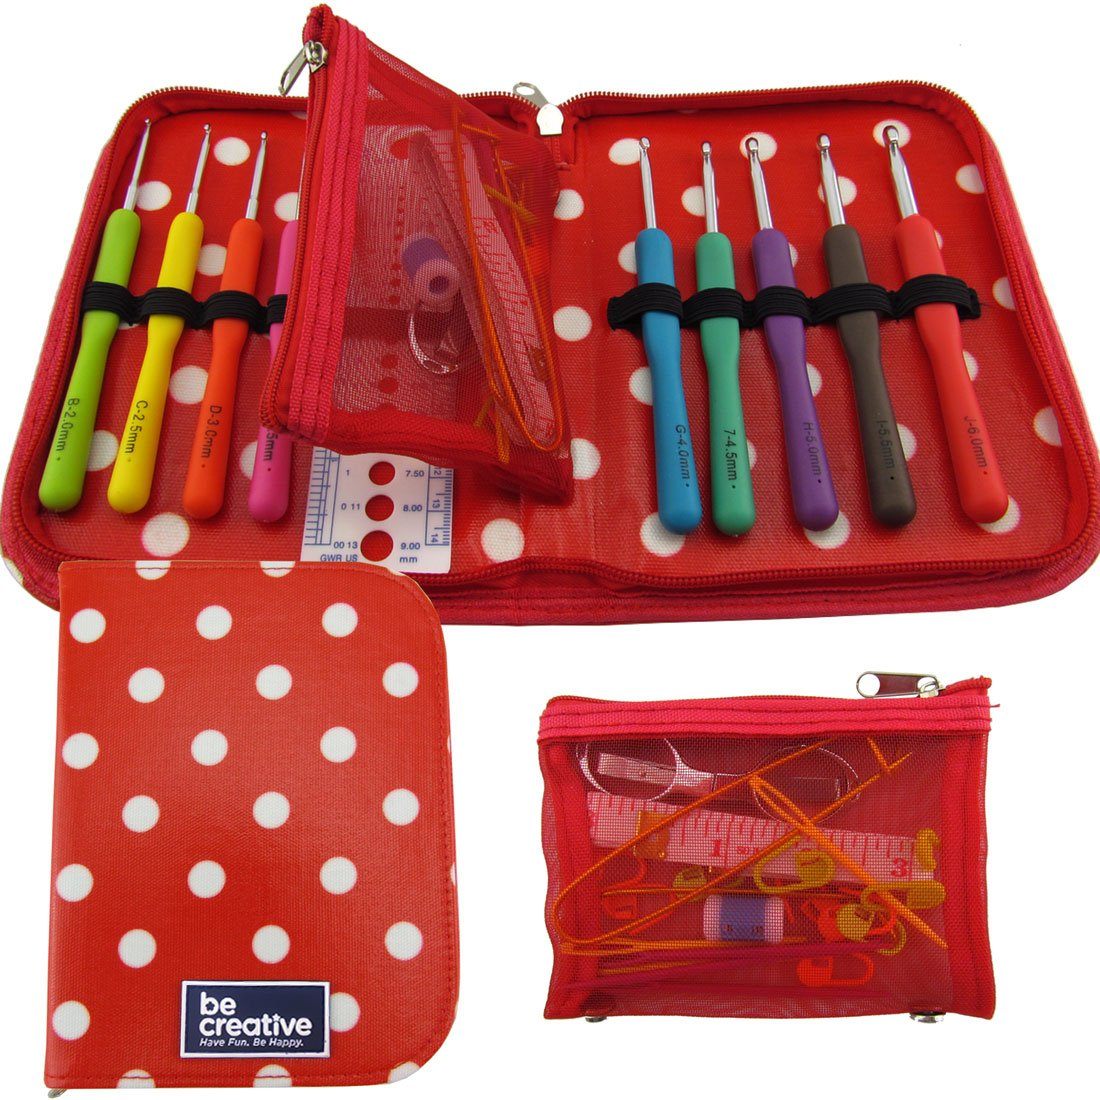 Best Crochet Hook Set with Ergonomic Handles for Extreme Comfort. Perfect Crochet Hooks for Arthritic Hands, Smooth Needles for Superior Results & 22 Knitting Accessories to use with All Patterns. BeCraftee